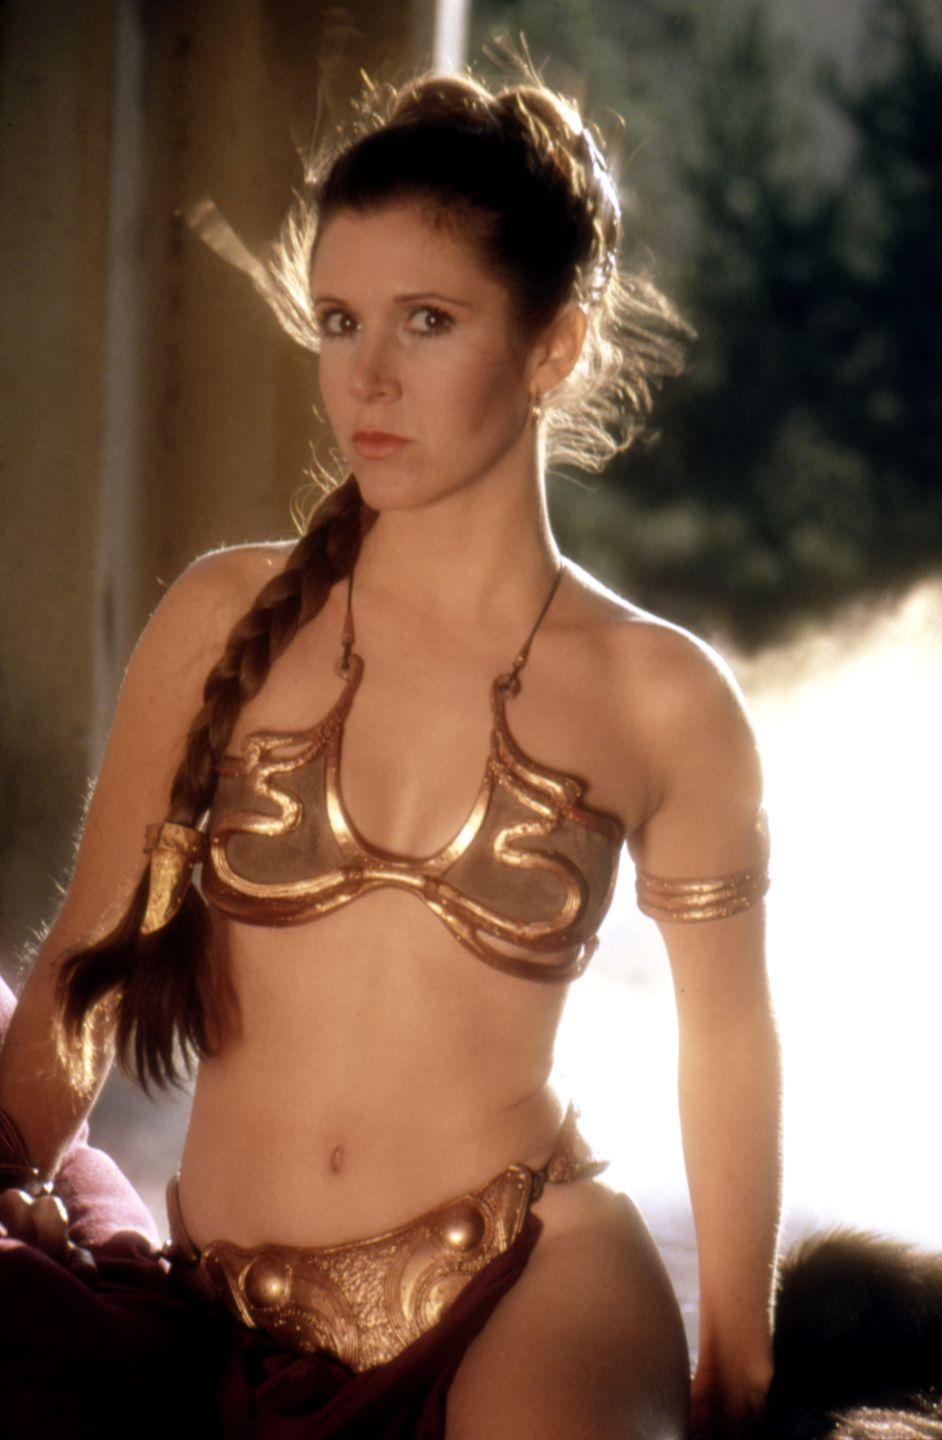 <p>Cates' red suit wasn't the only one influencing swimwear around that time. The following year, Princess Leia's sexy gold number, though not actually a swimsuit, inspired many a bikini style.</p>